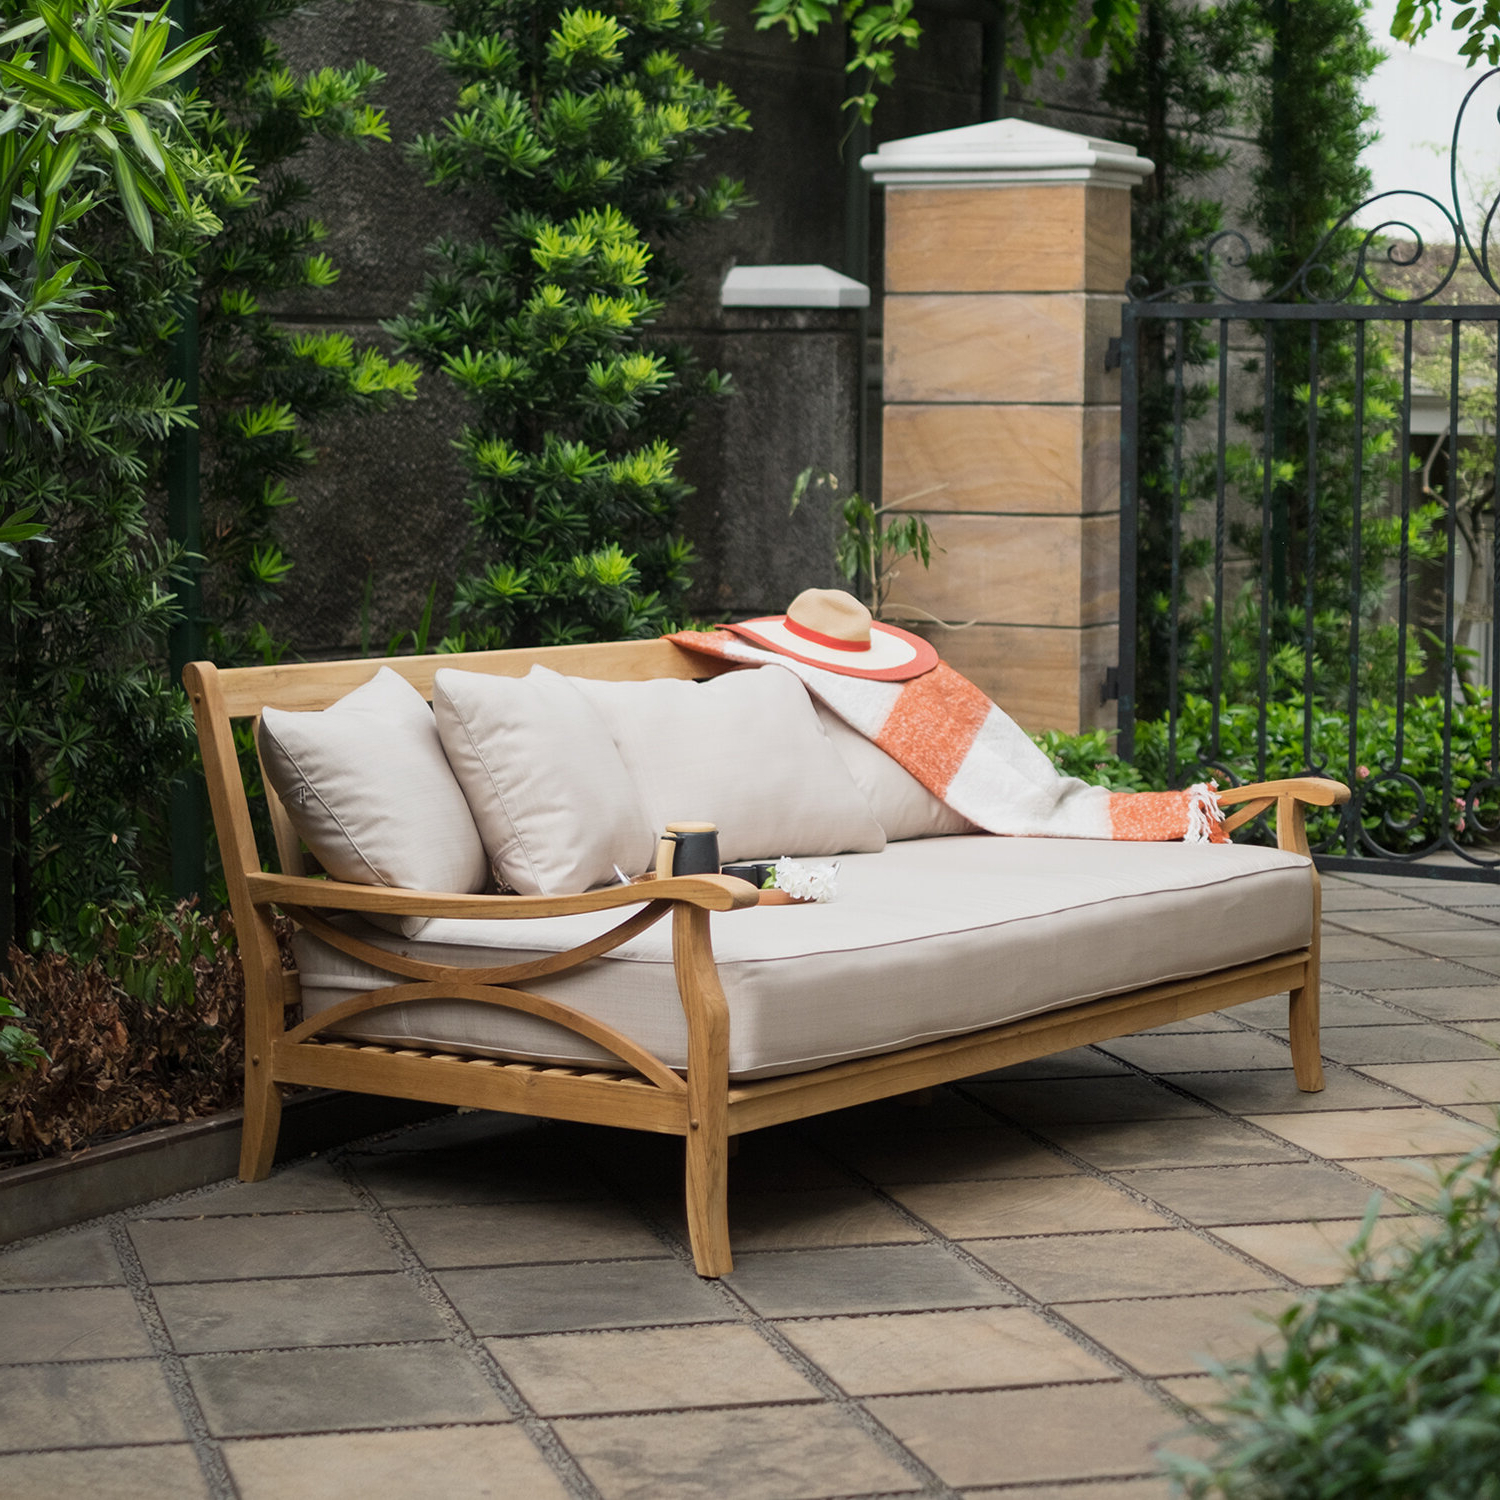 Brunswick Teak Patio Daybed With Cushions For Recent Clary Teak Lounge Patio Daybeds With Cushion (Gallery 7 of 20)